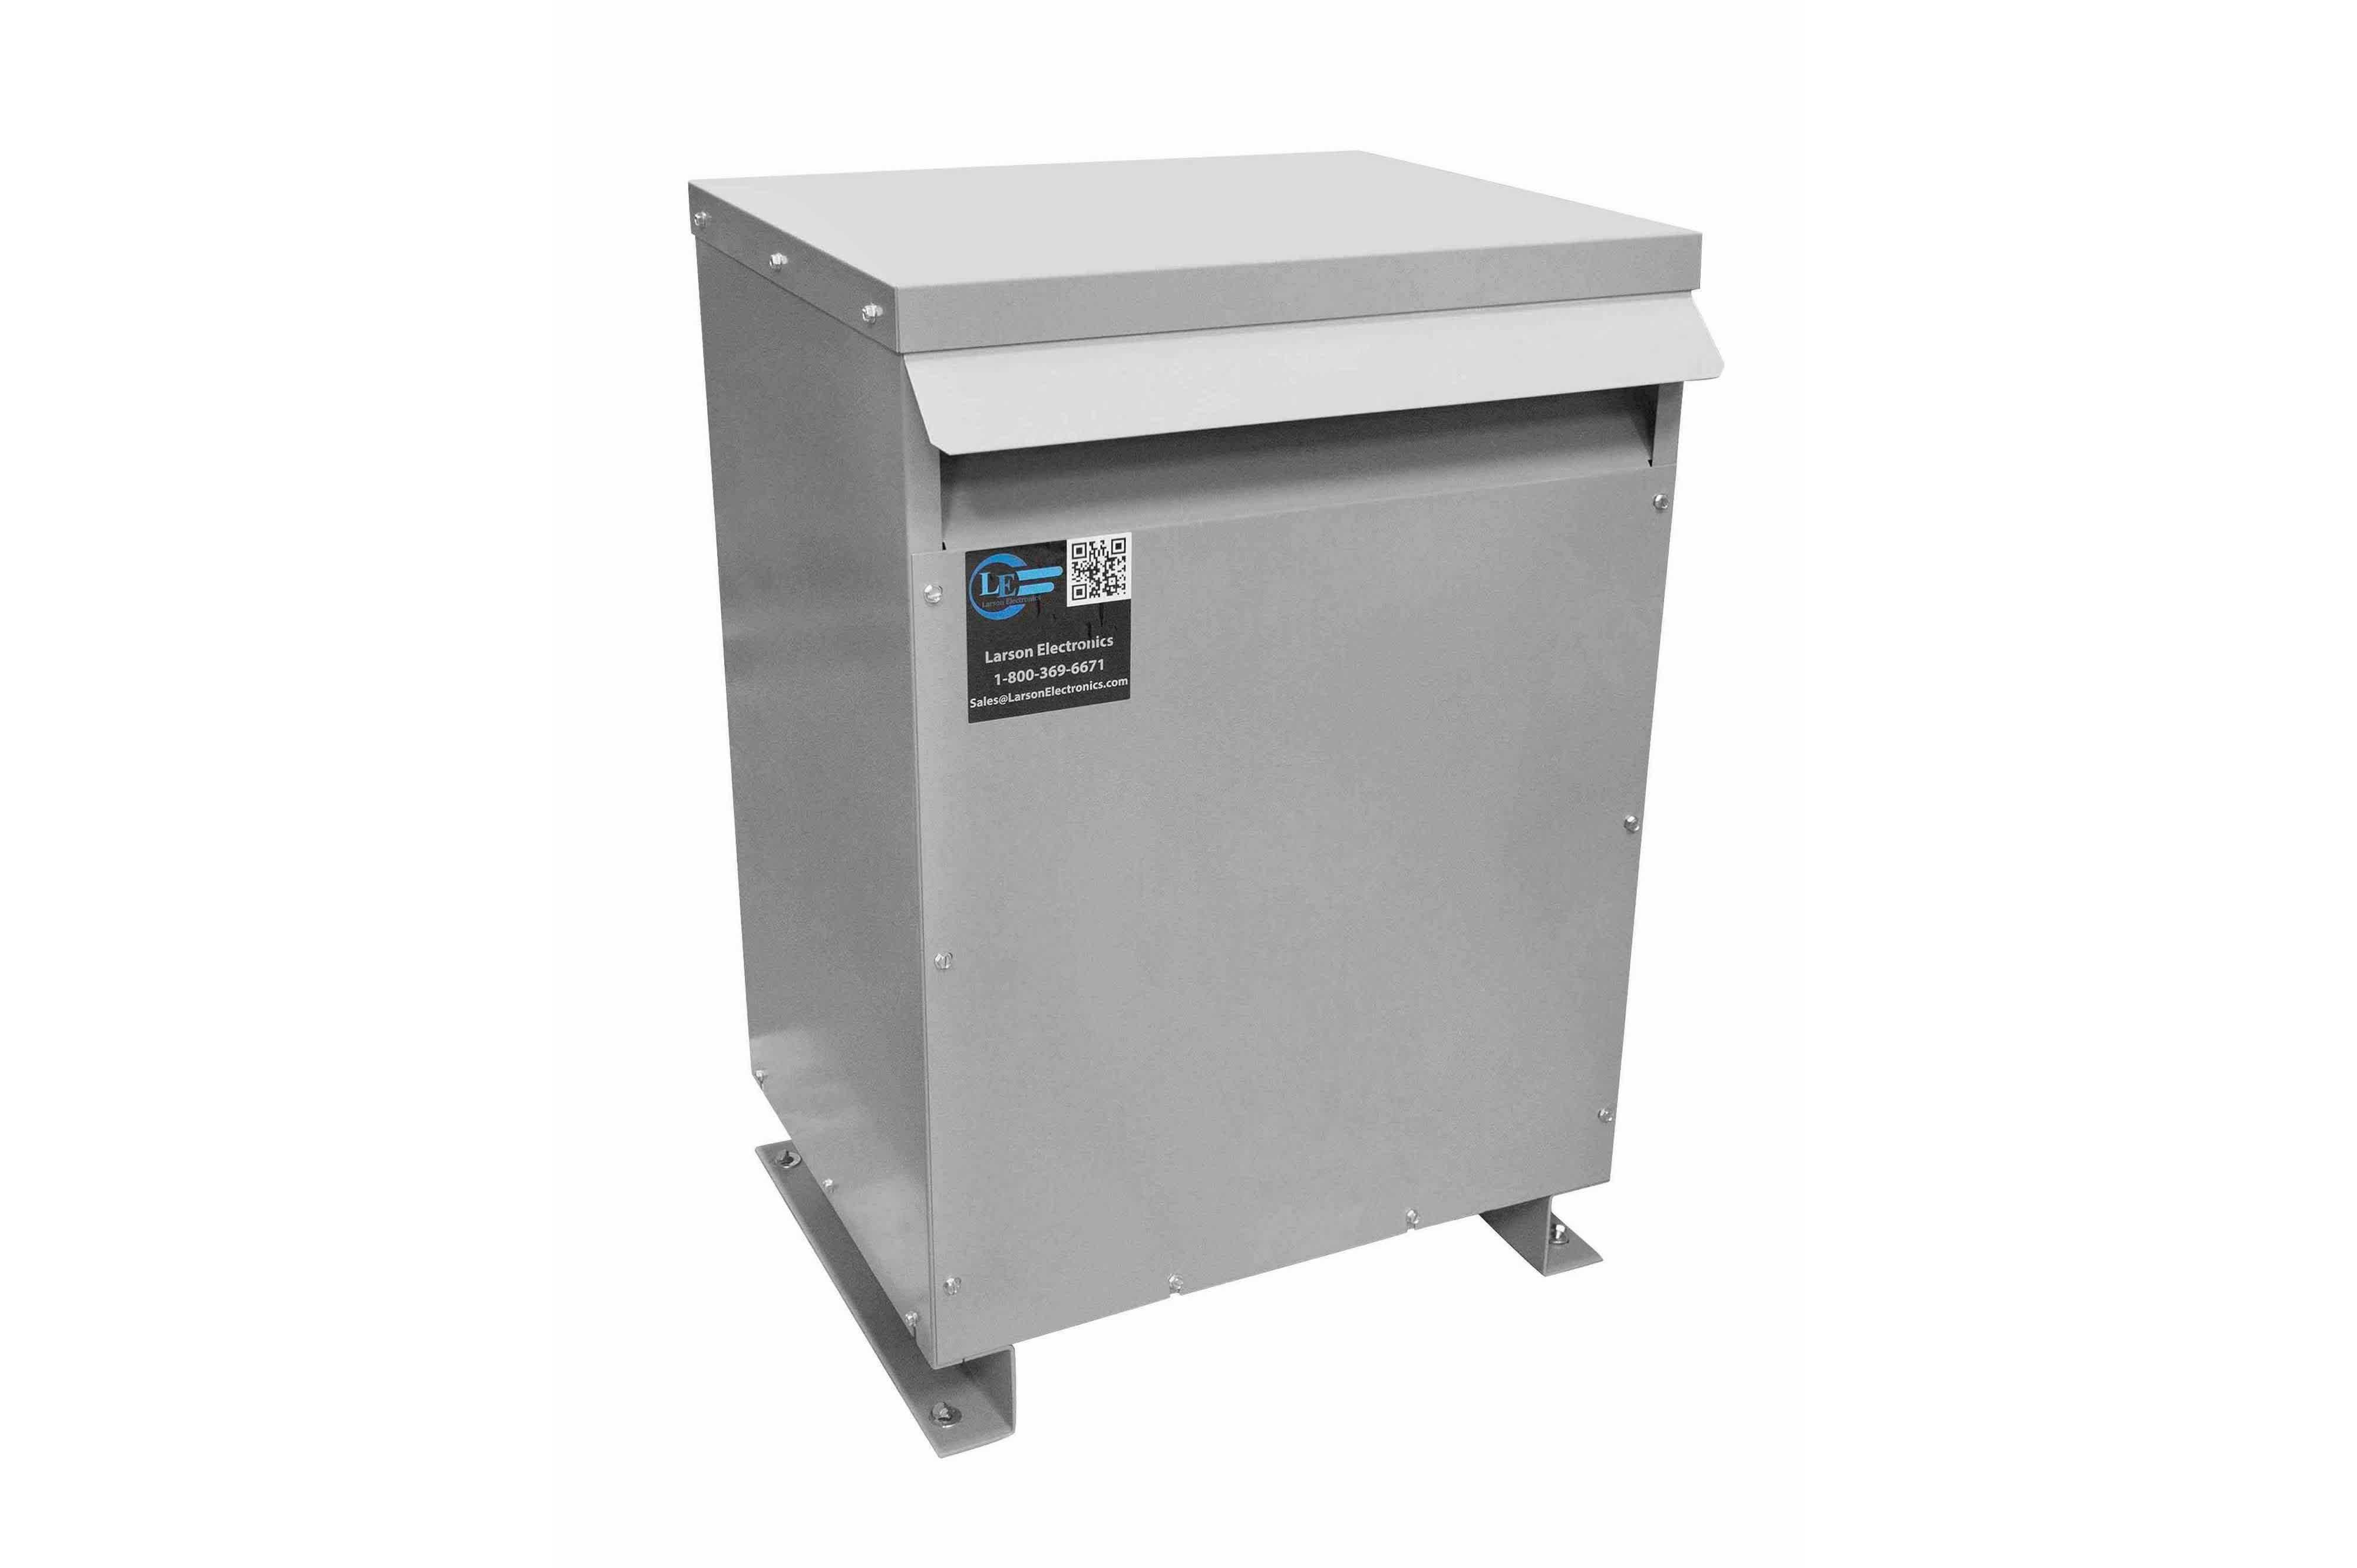 700 kVA 3PH Isolation Transformer, 208V Wye Primary, 240V Delta Secondary, N3R, Ventilated, 60 Hz